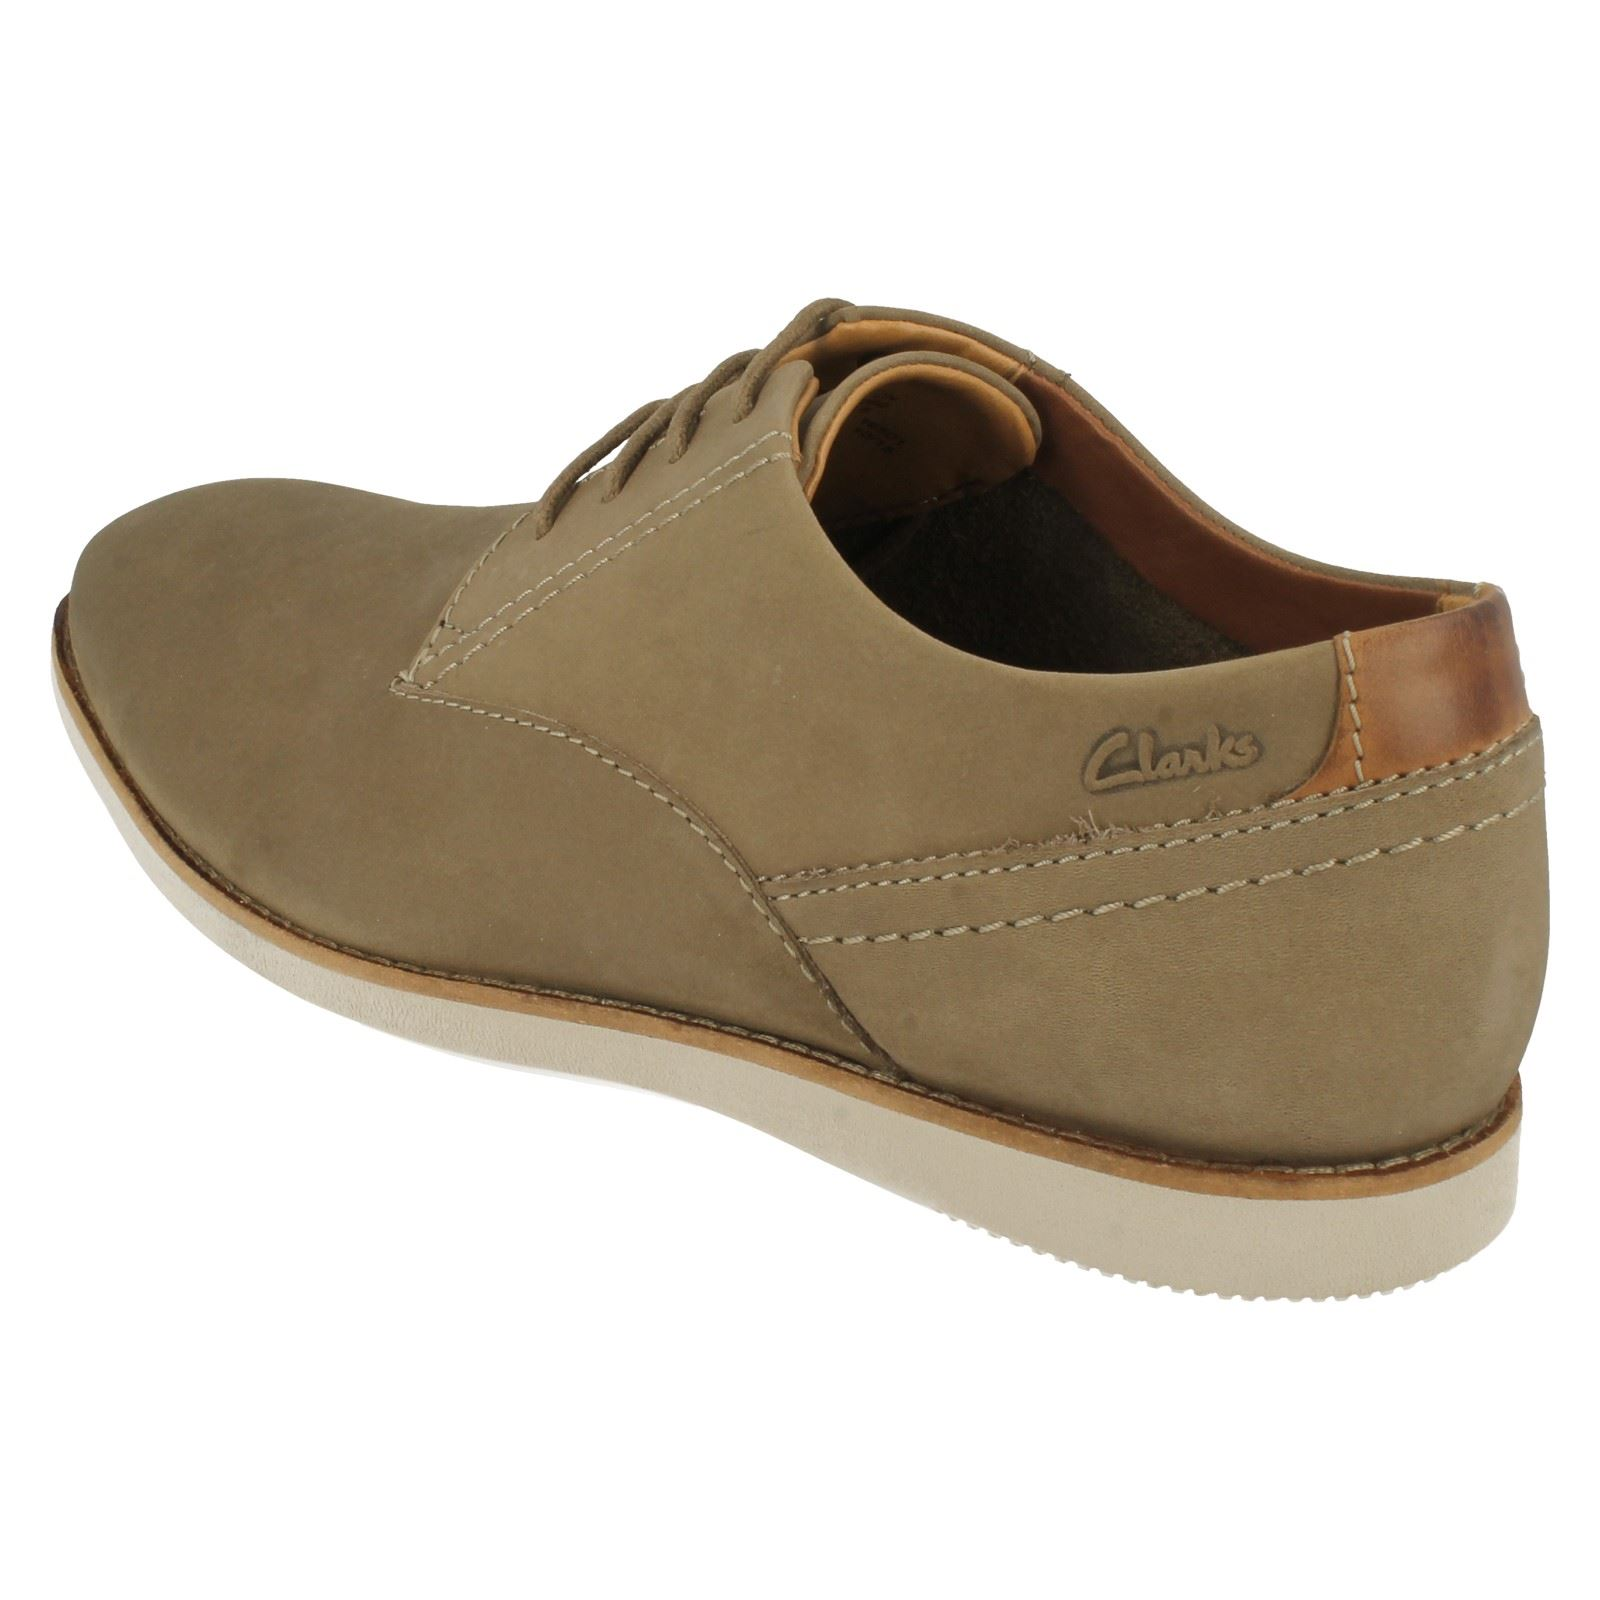 Mens Dress Shoes By Clark